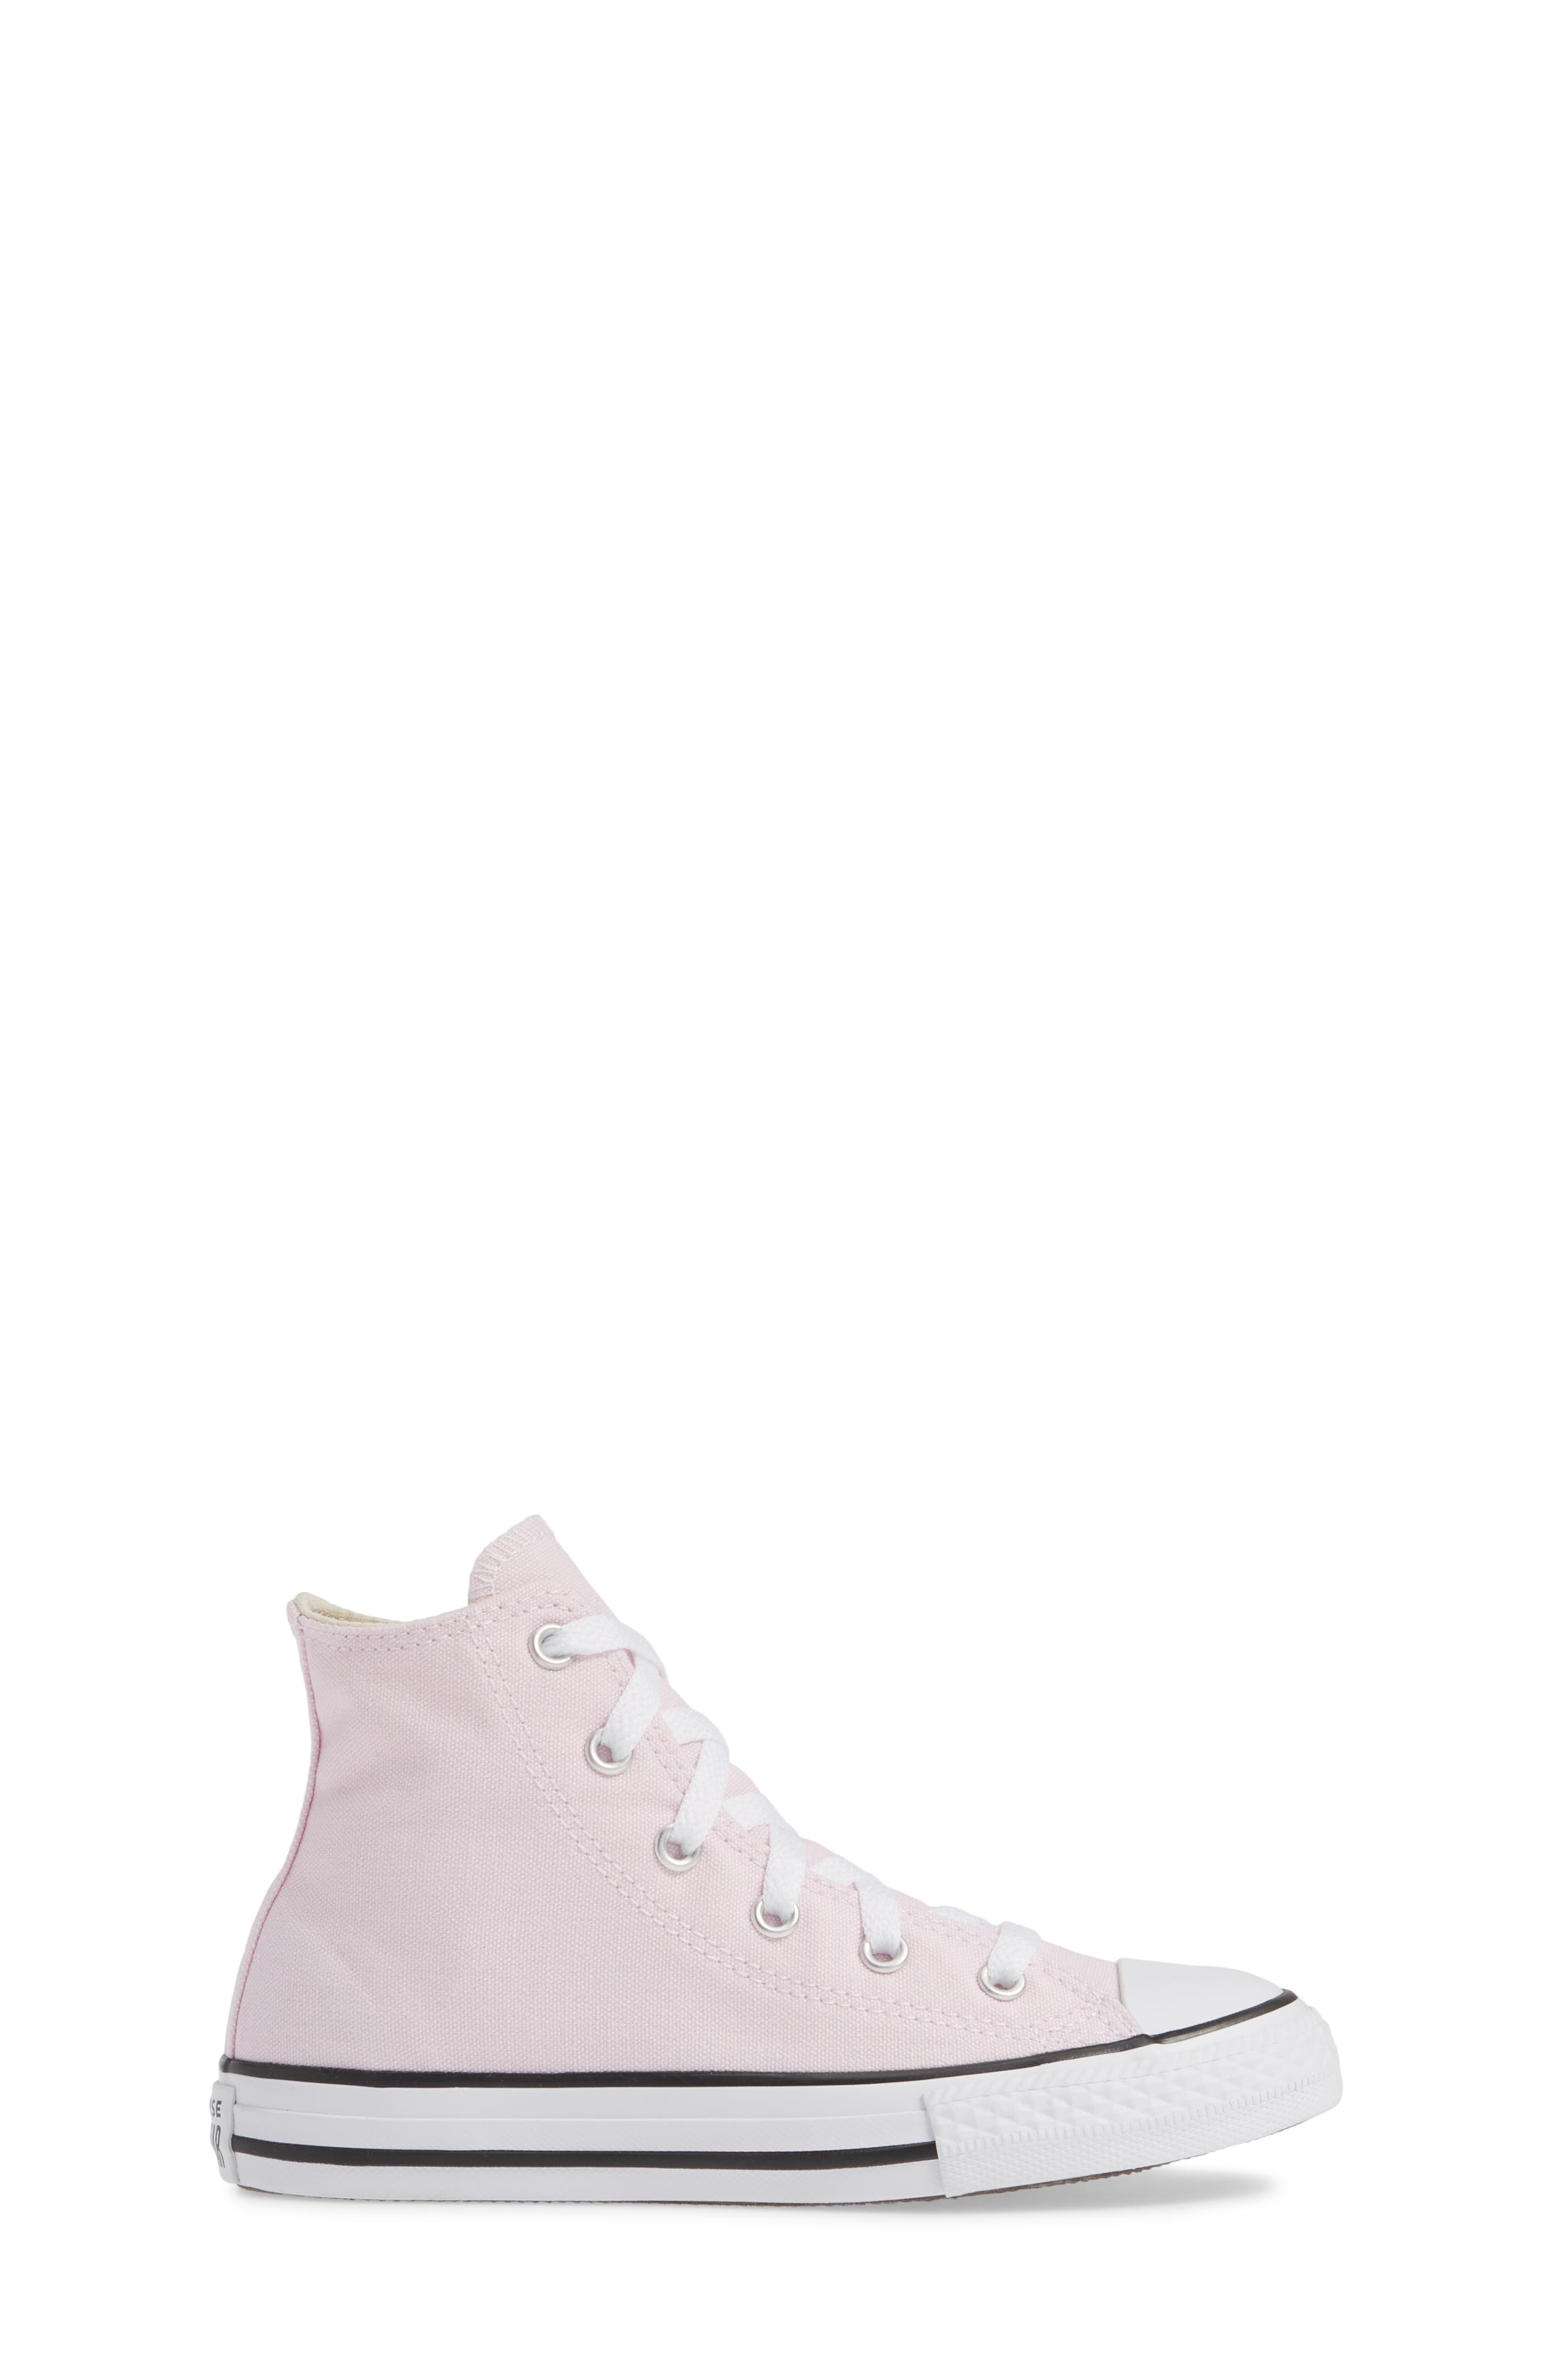 CONVERSE, Chuck Taylor<sup>®</sup> High Top Sneaker, Alternate thumbnail 3, color, PINK FOAM/ IVORY/ WHITE